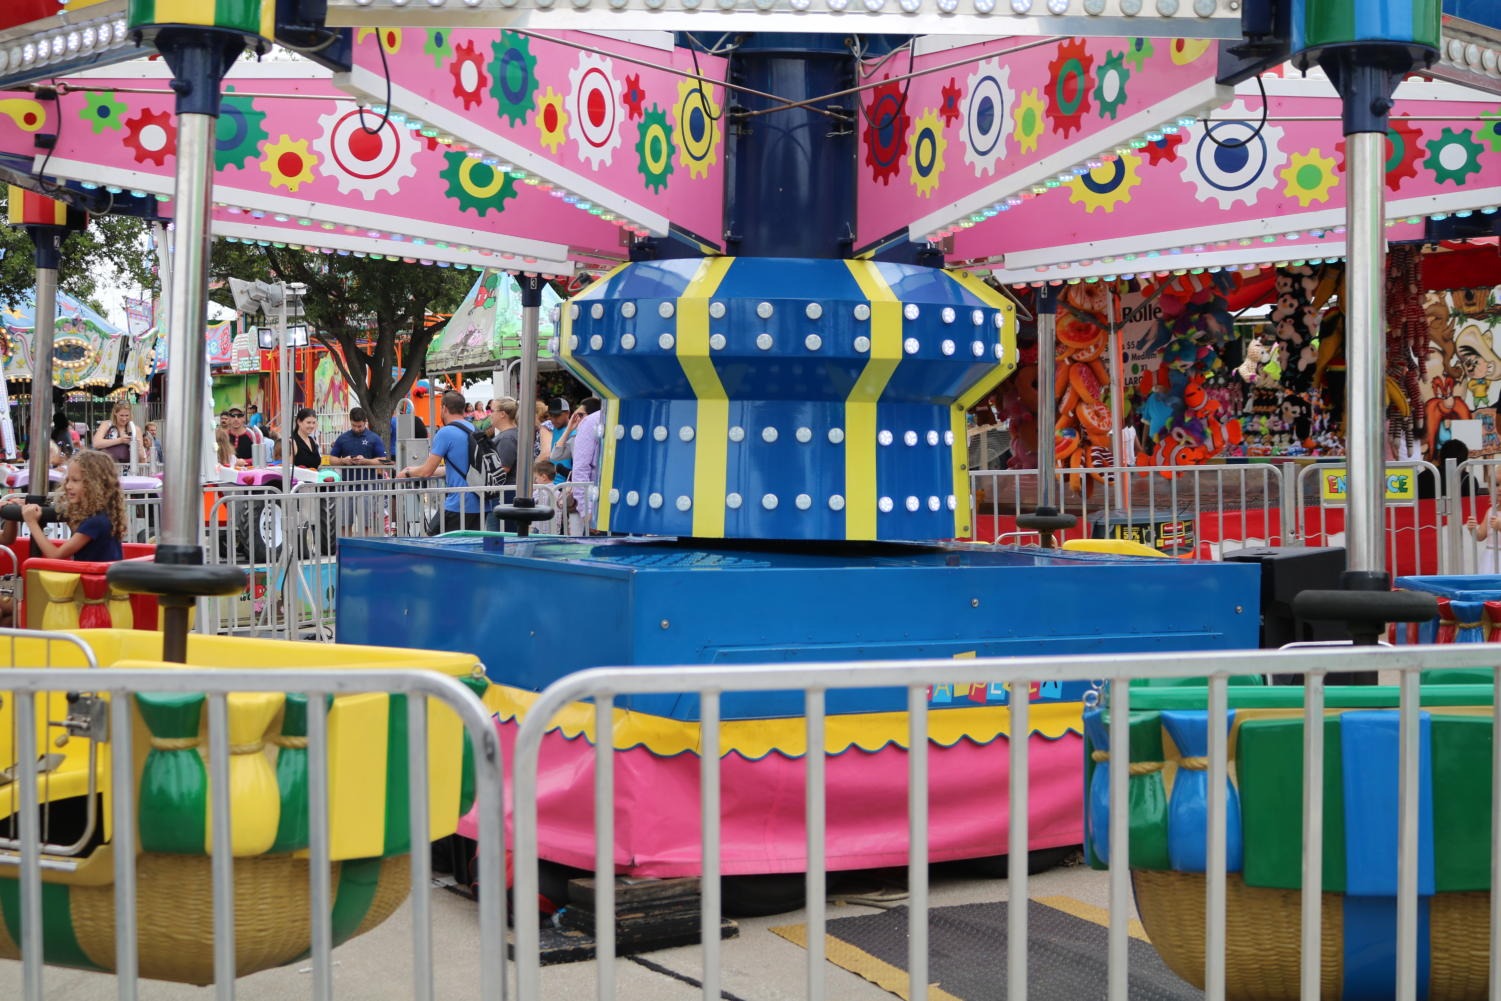 From Sept. 7-9, the St. Ann's Catholic Church hosted their annual carnival right outside of the church on Samuel Blvd. Since 1993, families flock to the carnival every year to enjoy themselves on rides and eat a variety of food.